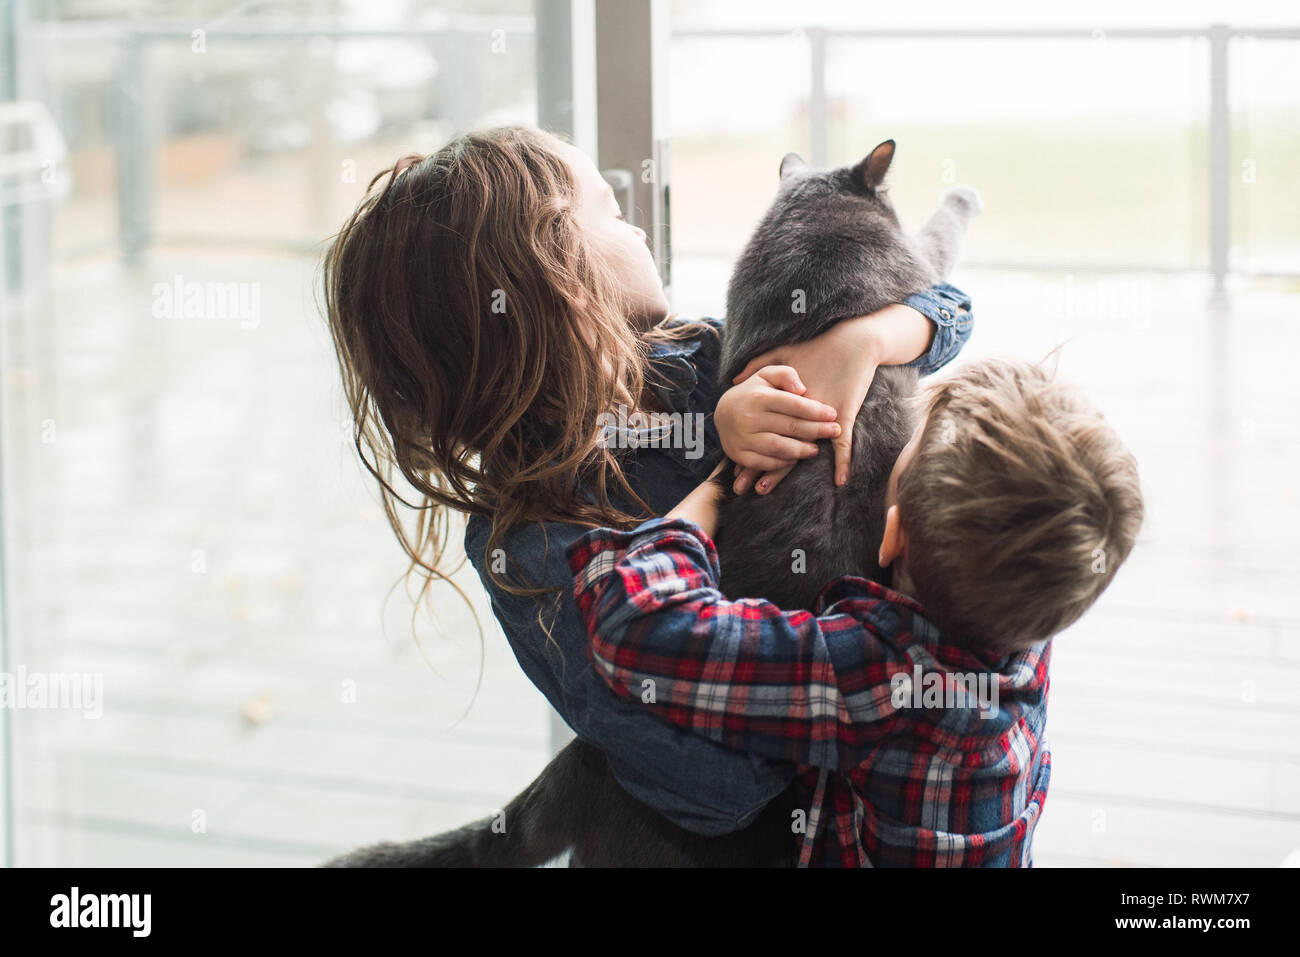 Children playing with cat at home Stock Photo